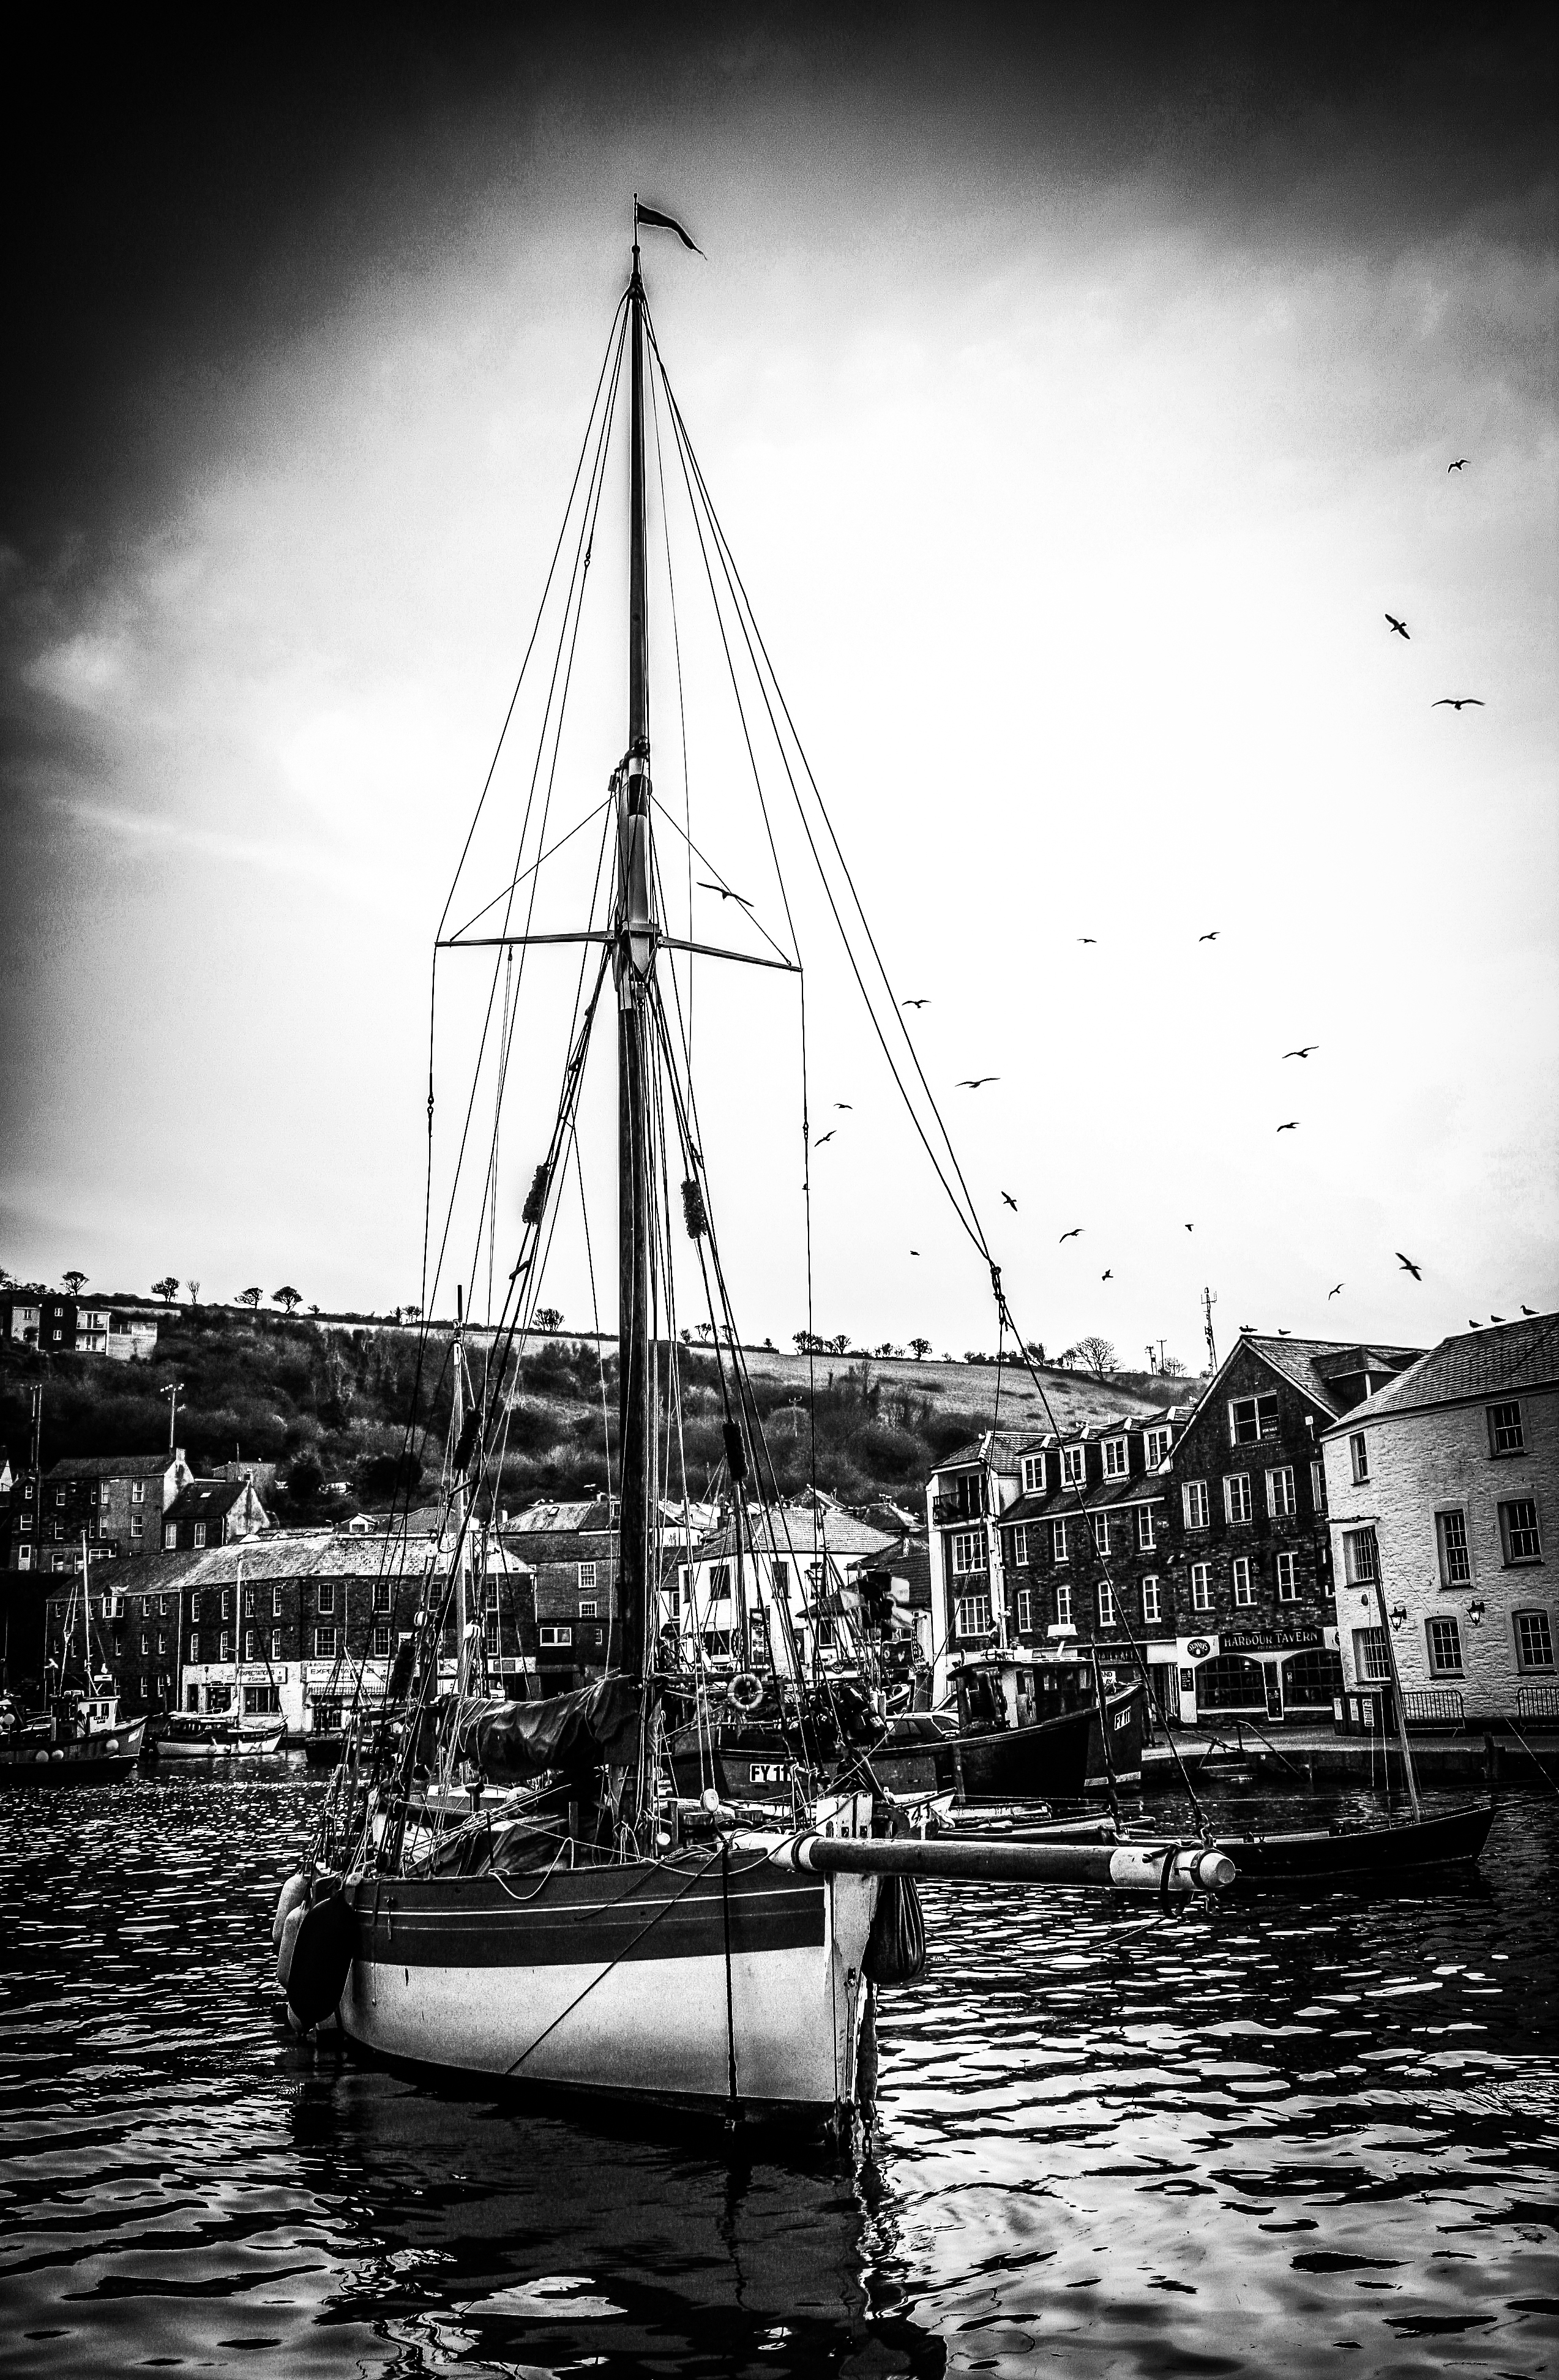 Mevagissey Harbour Boat